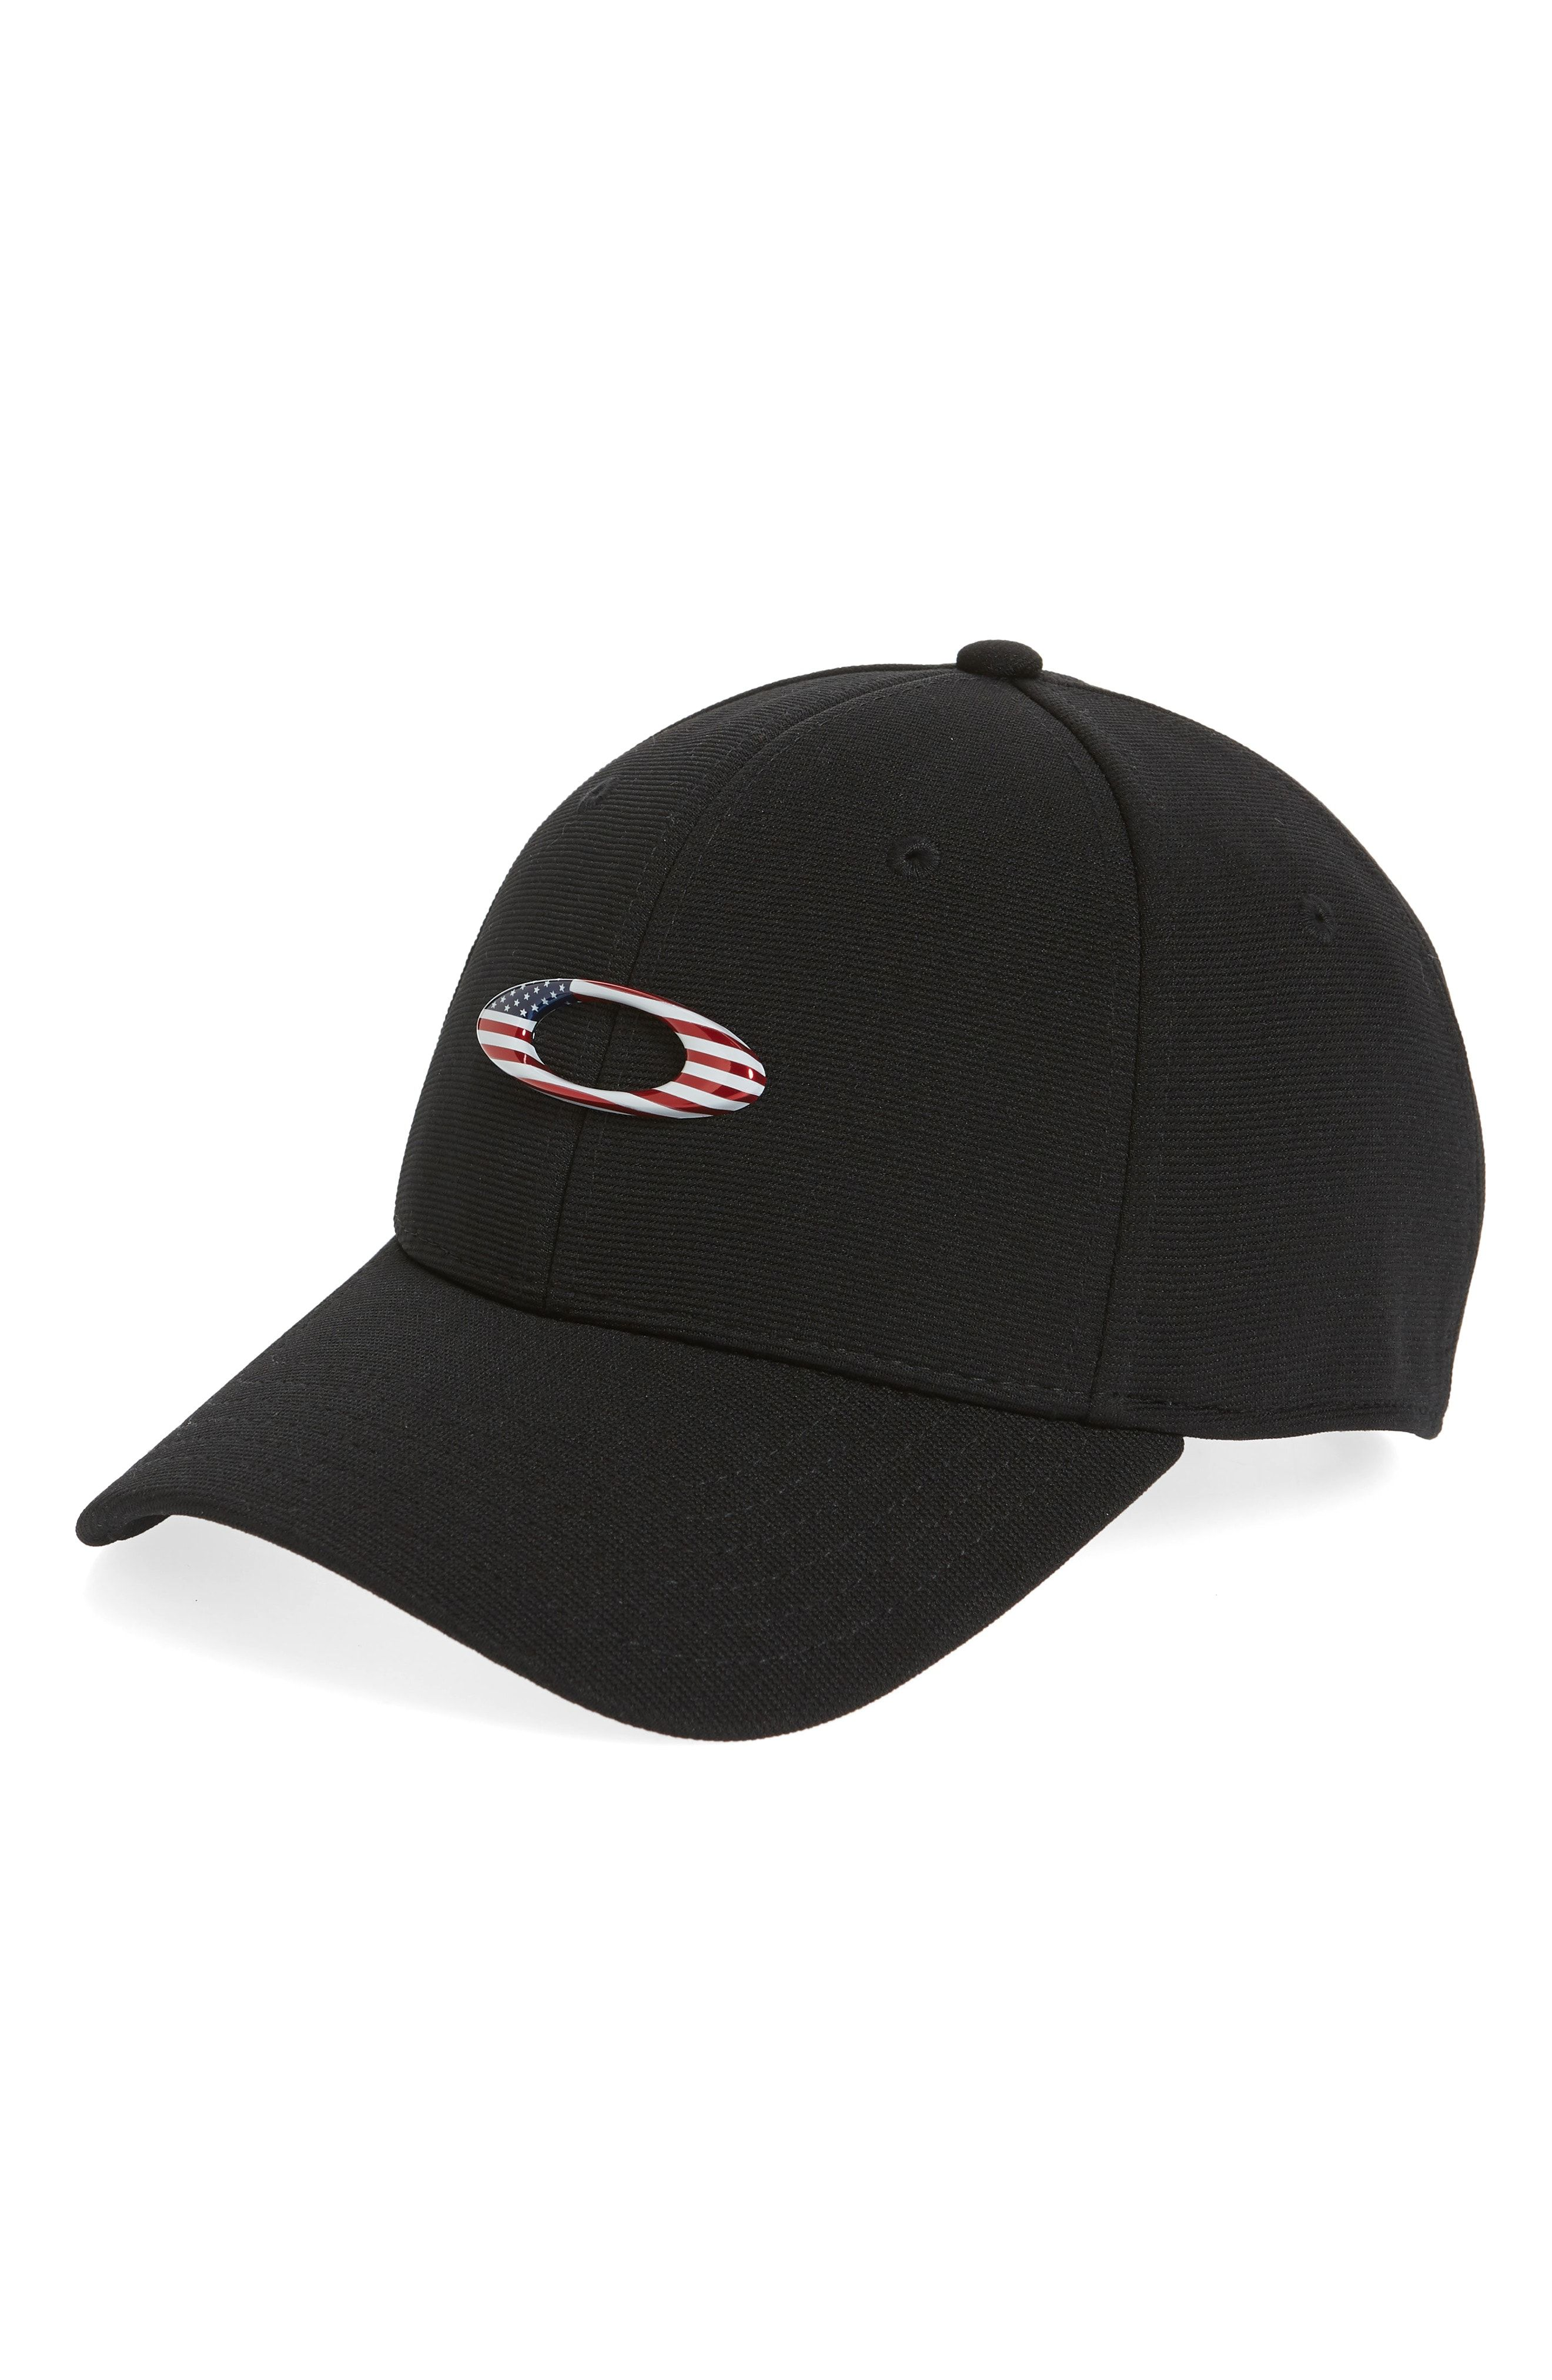 Tincan Ball Cap In Black/ American Flag Ball cap, Oakley